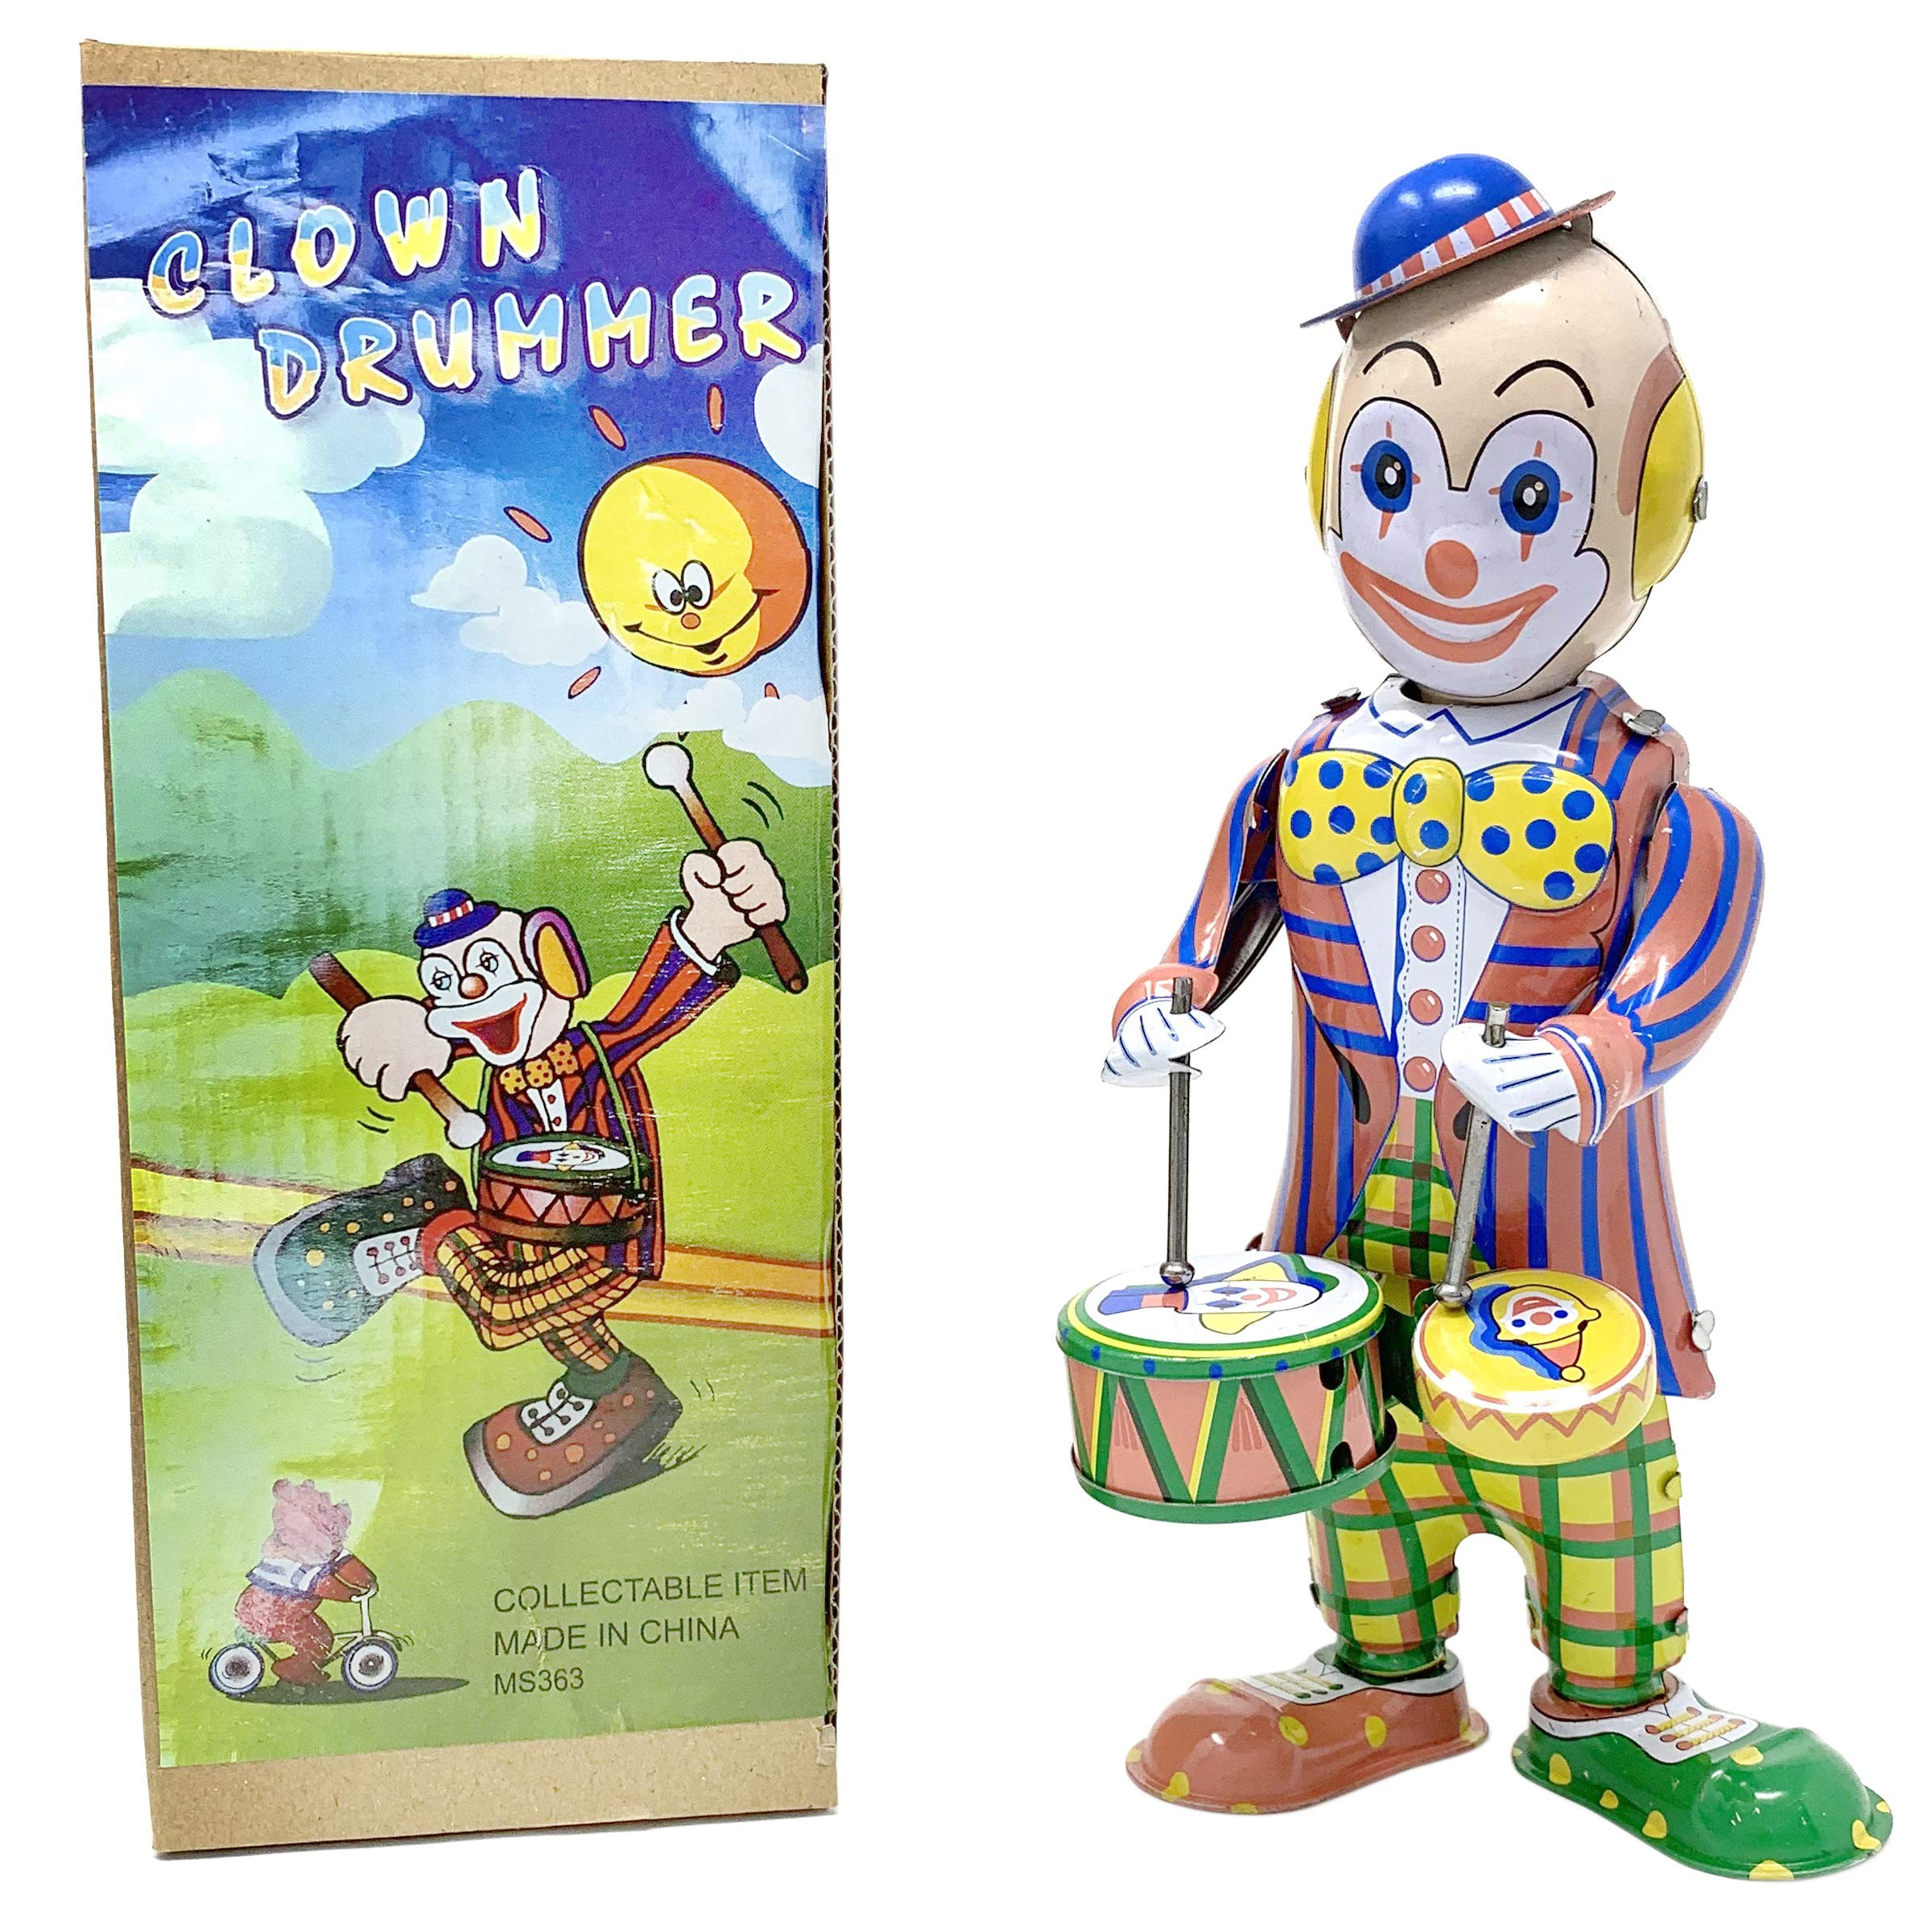 Off the Wall Toys Vintage Windup Tin Toy Drumming Circus Clown Robot